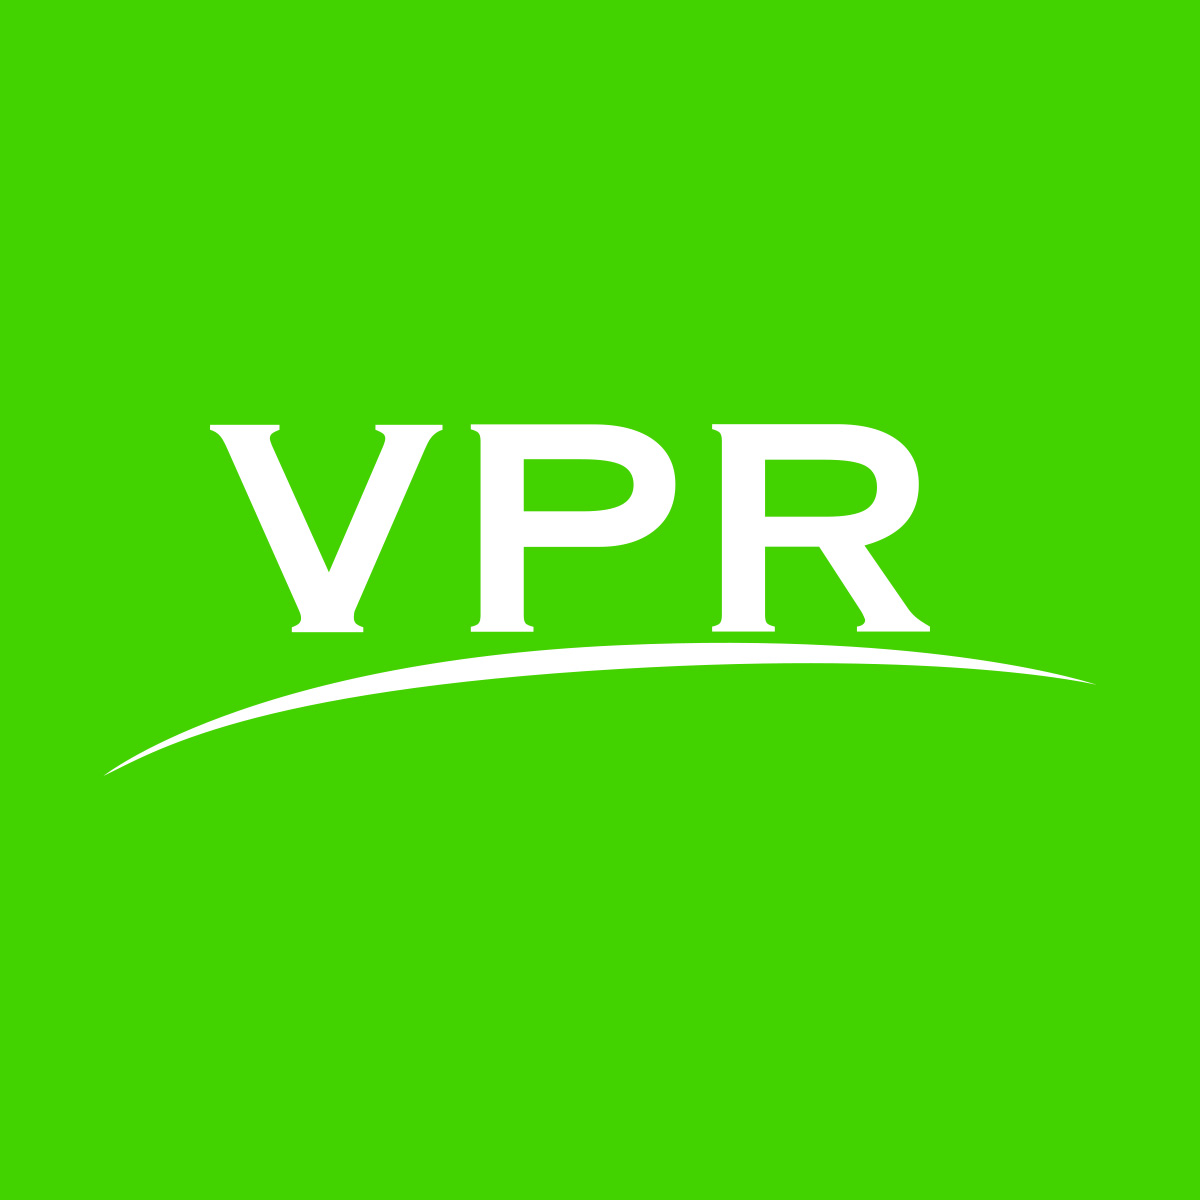 VPR-LOGO-2015-PMS-362-DO-NOT-CROP